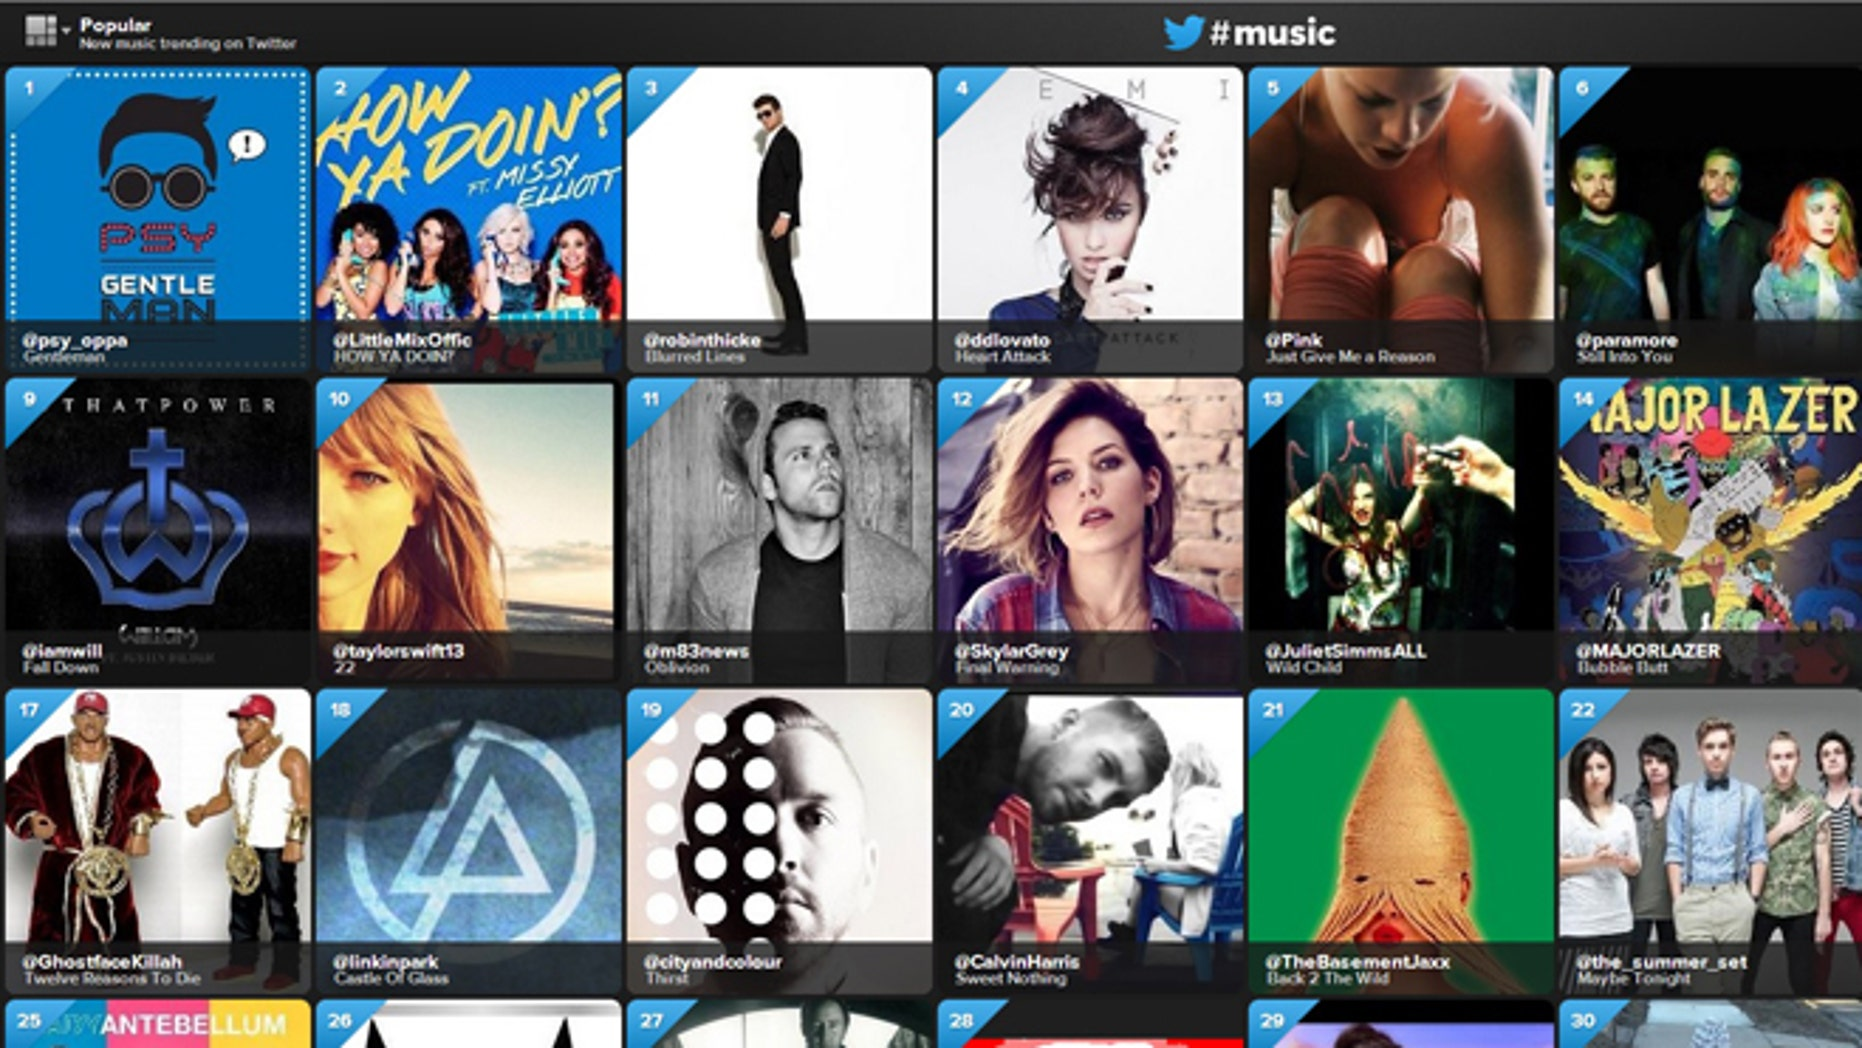 April 18, 2013: Microblogging site Twitter launched a new social music service today, letting people easily discover and share new music from their favorite artists.